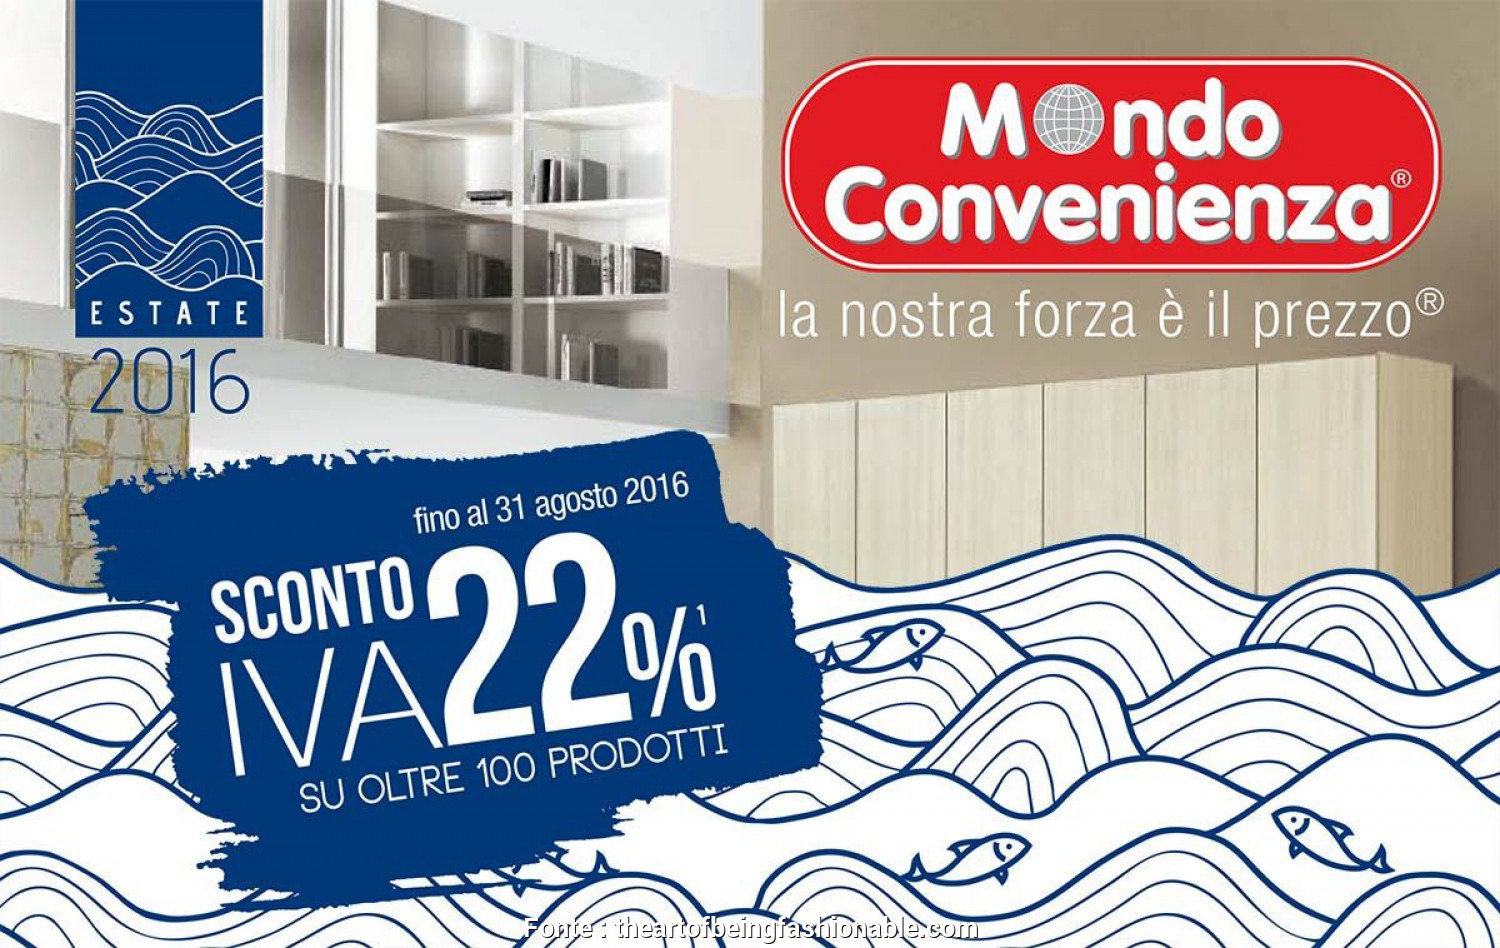 Mondo Convenienza Divani Garanzia, Deale Mondo Convenienza Catalogo Estate With Garanzia Divani Mondo Convenienza